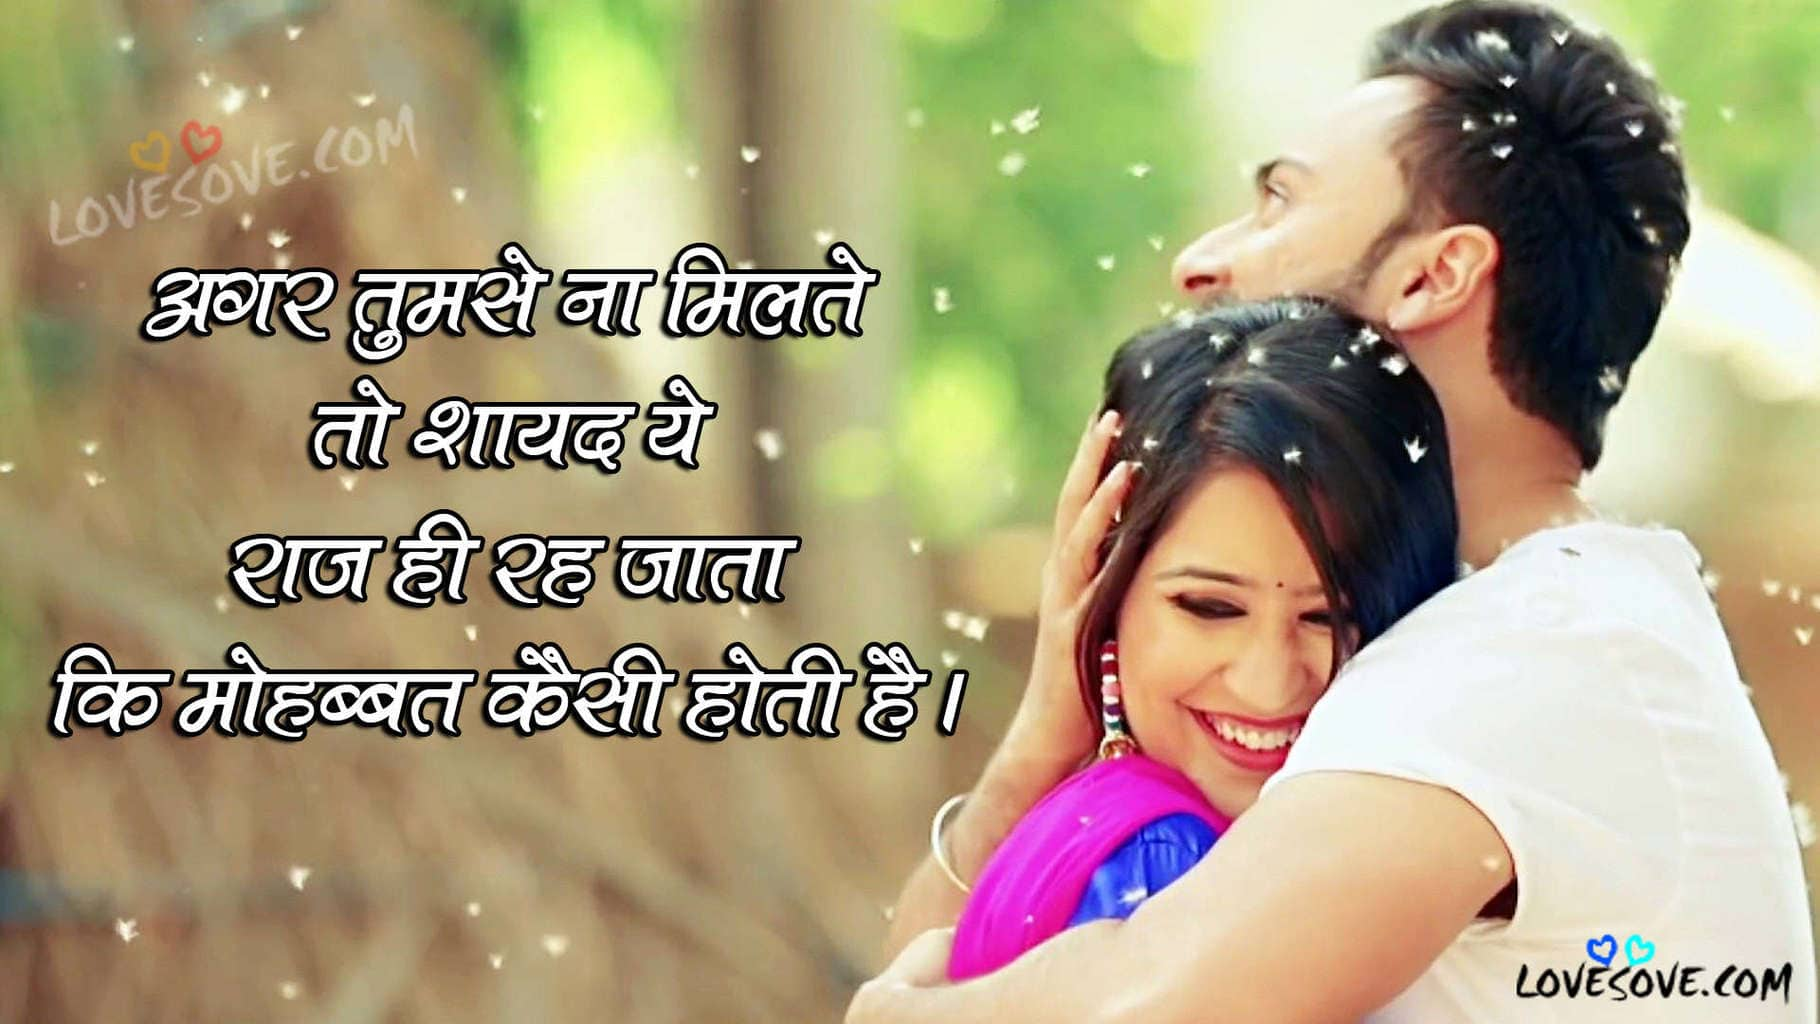 romantic shayari, hindi love quotes, hindi romantic shayari, romantic 2 line shayari, romantic love quotes in hindi, love lines in hindi, best love quotes in hindi, heart touching status in hindi, heart touching lines in hindi for girlfriend, heart touching emotional friendship shayari, heart touching romantic shayari, heart touching nice love shayari, heart touching love shayari in hindi, 2 line heart touching shayari, best romantic shayari, hindi romantic shayari, latest romantic shayari, hindi love shayari, love quotes hindi, love lines in hindi, romantic quotes in hindi, Hindi Love lines, Love Romantic Shayari, Hindi Quotes On Love